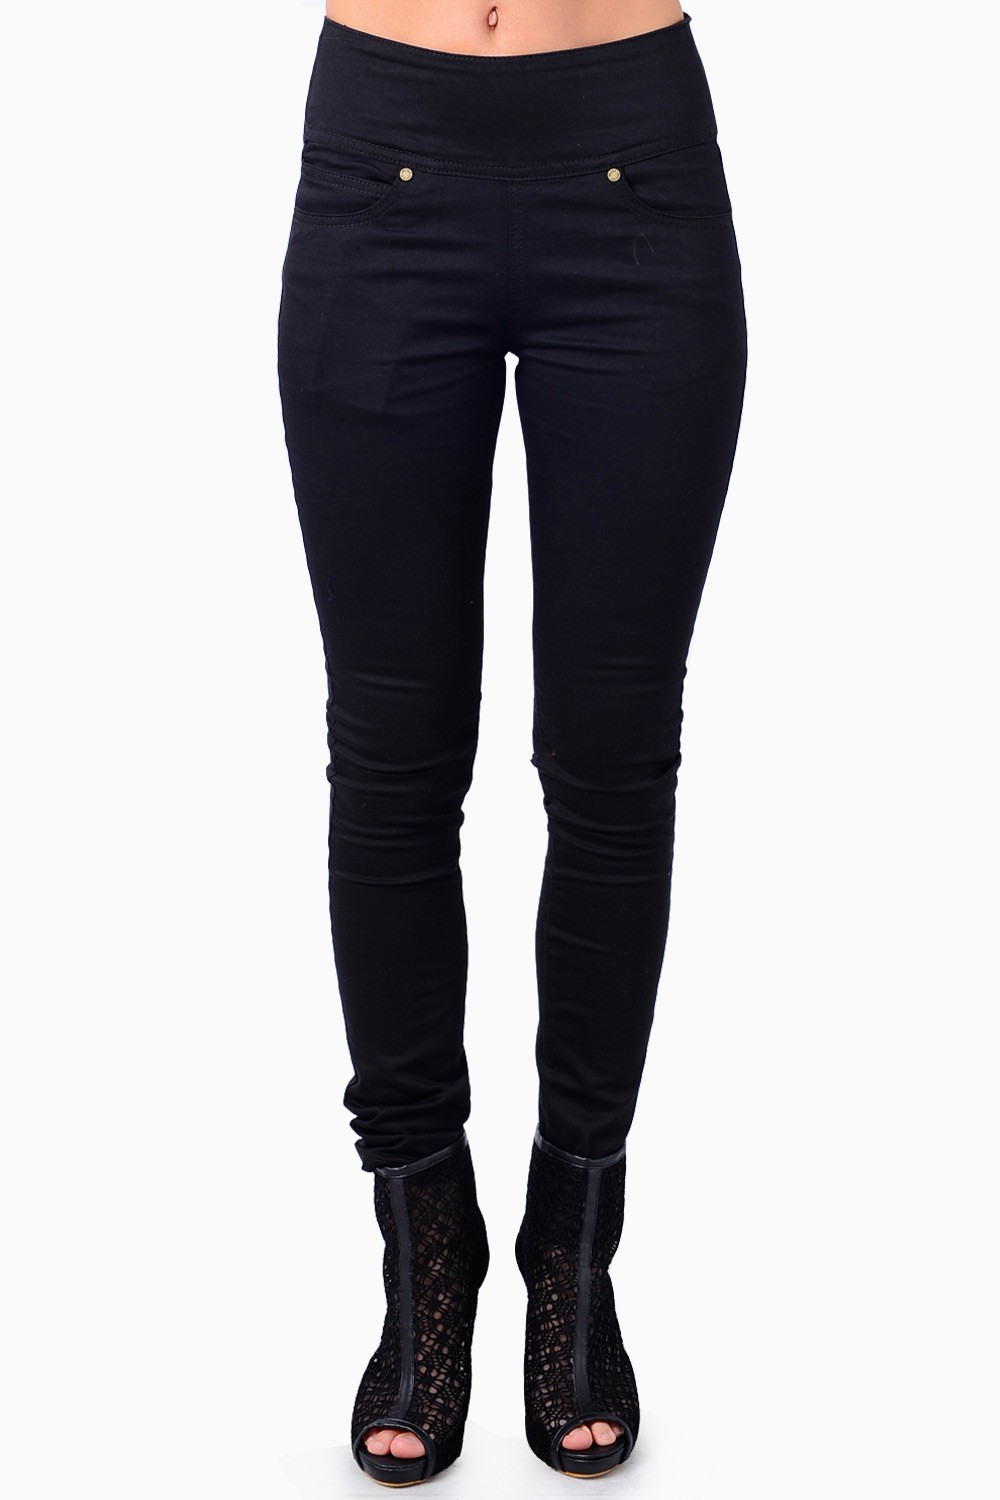 Women's Jeans Jegging High Waisted Jeans Cropped Jeans Skinny Jeans High Waisted Girlfriend Jeans Mom Jeans Tomgirl Jeans Bootcut Jeans Flare Jeans Favorite Boyfriend Jeans Wide Leg Jeans Overalls Men's Jeans Skinny Jeans Slim Fit Jeans Tapered Jeans Straight Jeans Bootcut Jeans Relaxed Fit Jeans Loose Fit Jeans Dad Jeans Baggy Jeans.